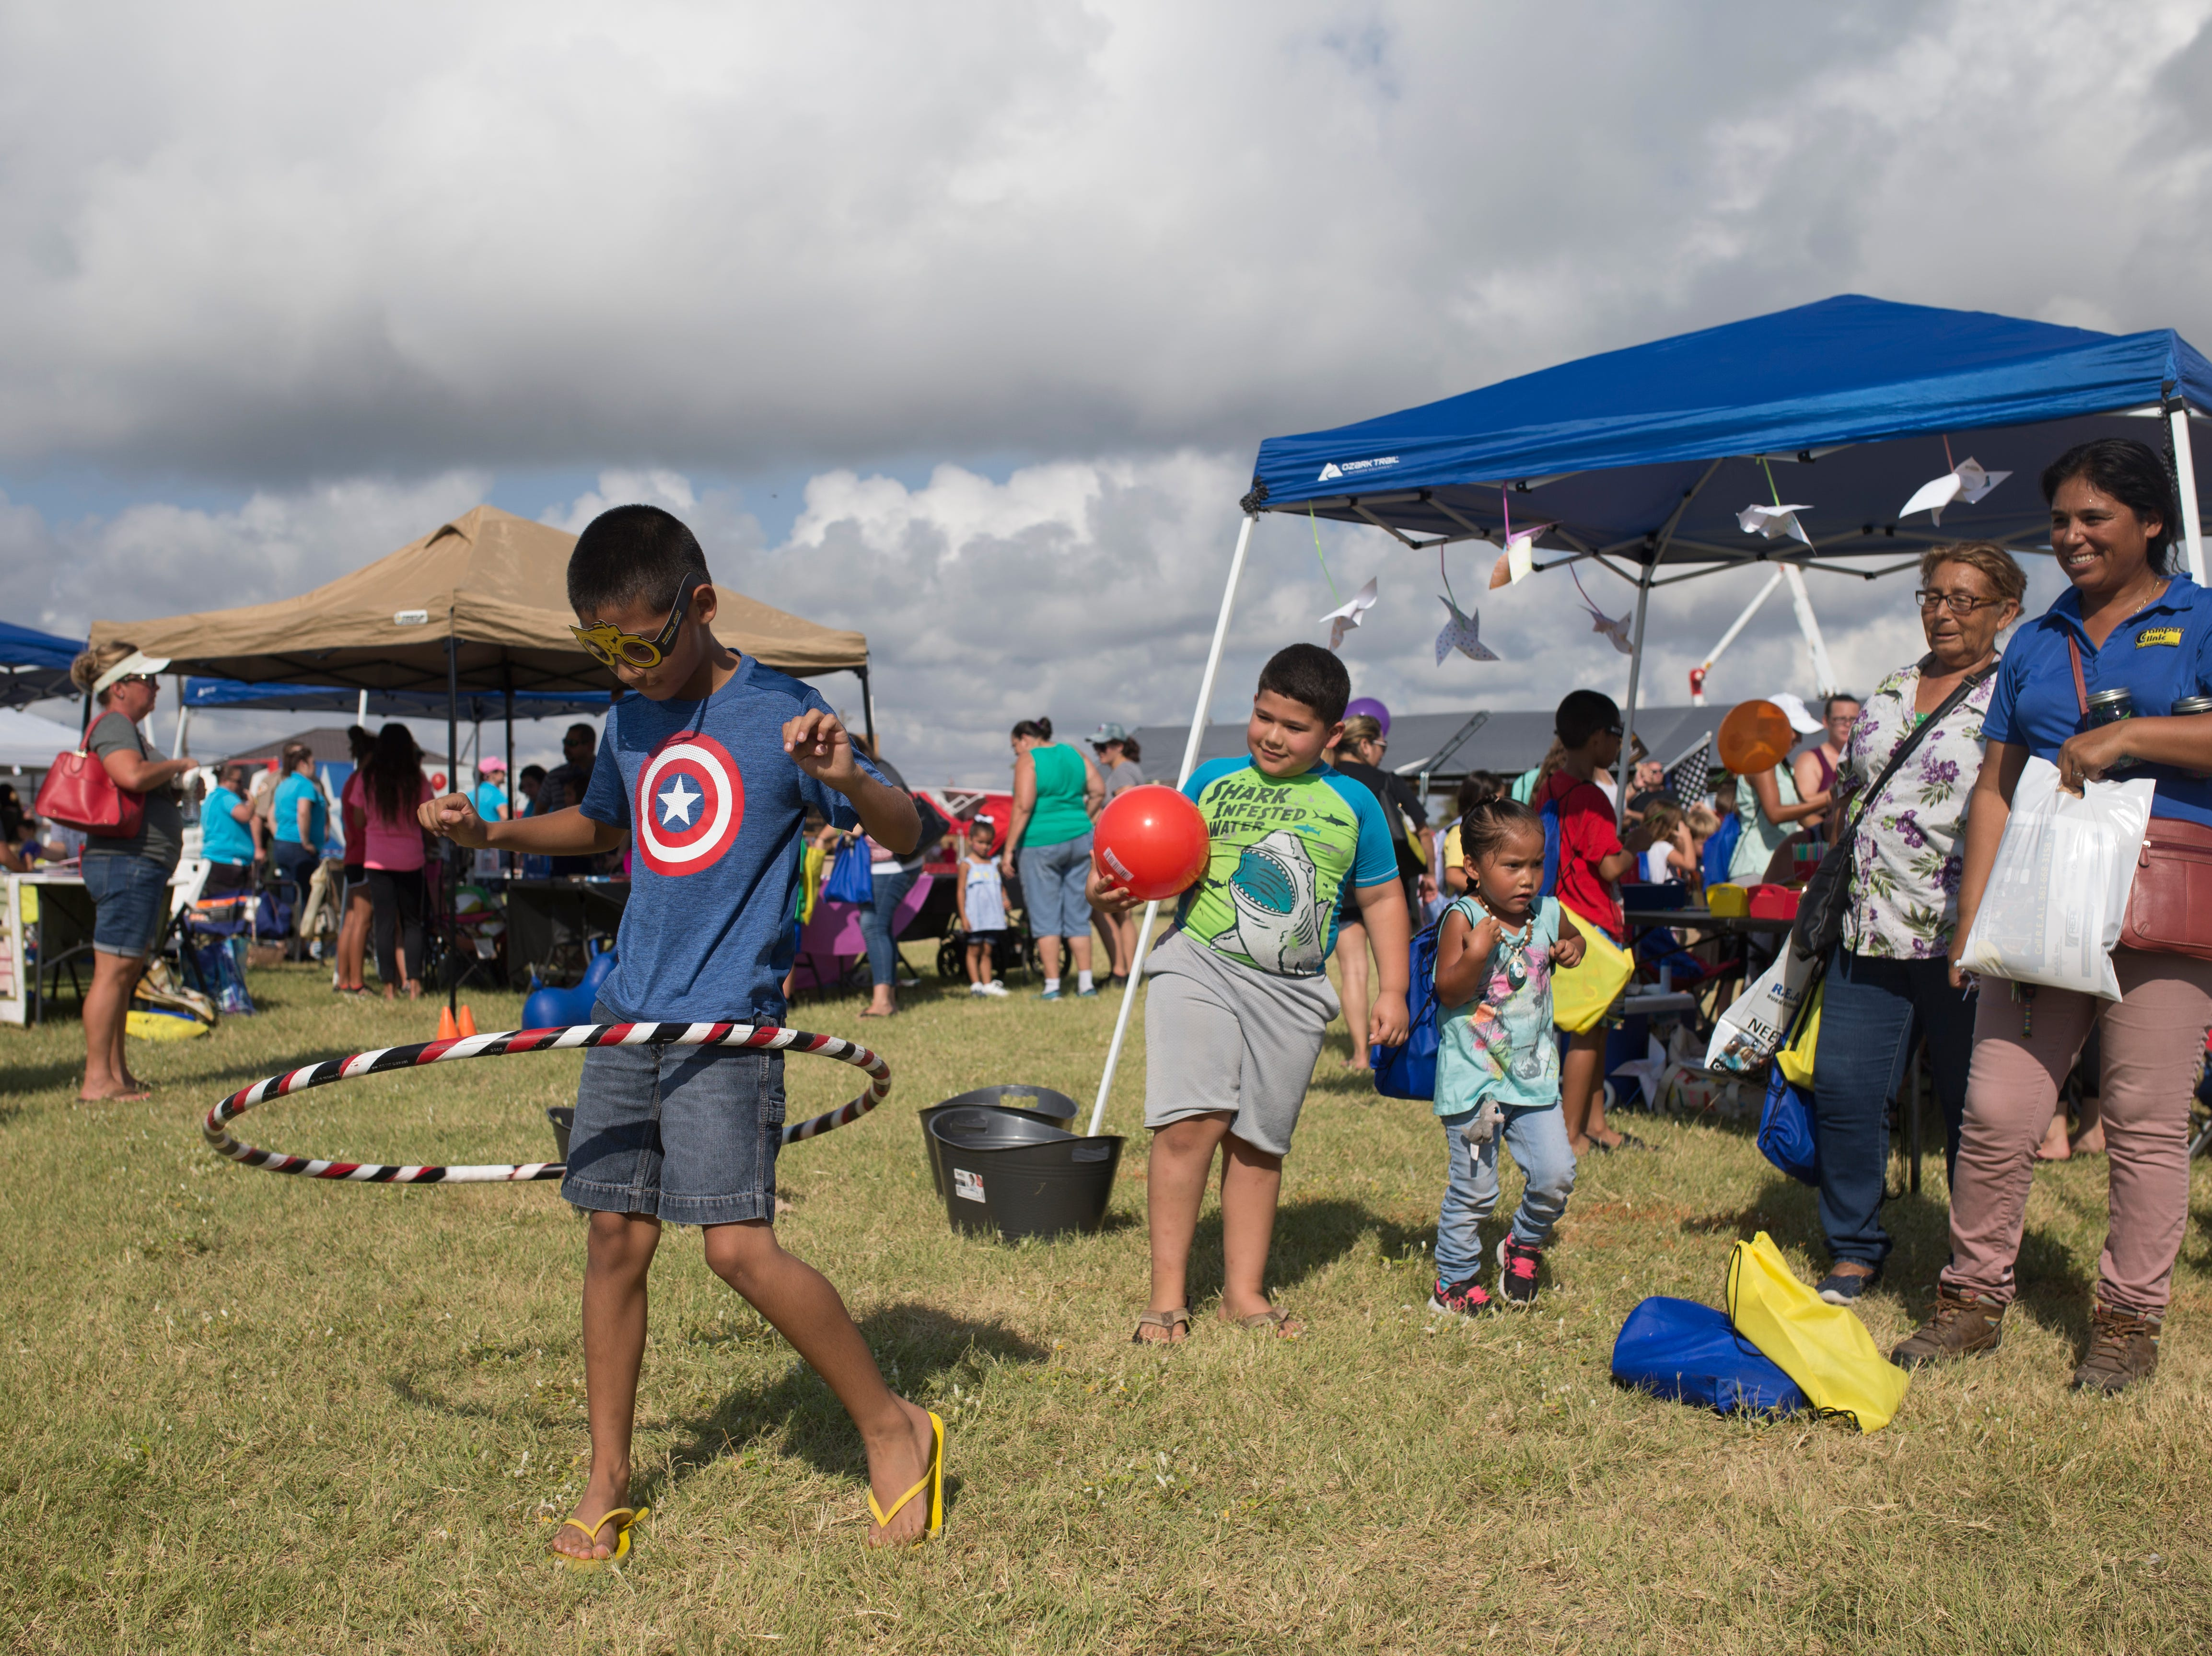 Justin Gonzalez, 10 (left), plays in the children's section during a remembrance ceremony to honor first responders for the anniversary of Hurricane Harvey on Saturday, Aug. 25, 2018 in Rockport.